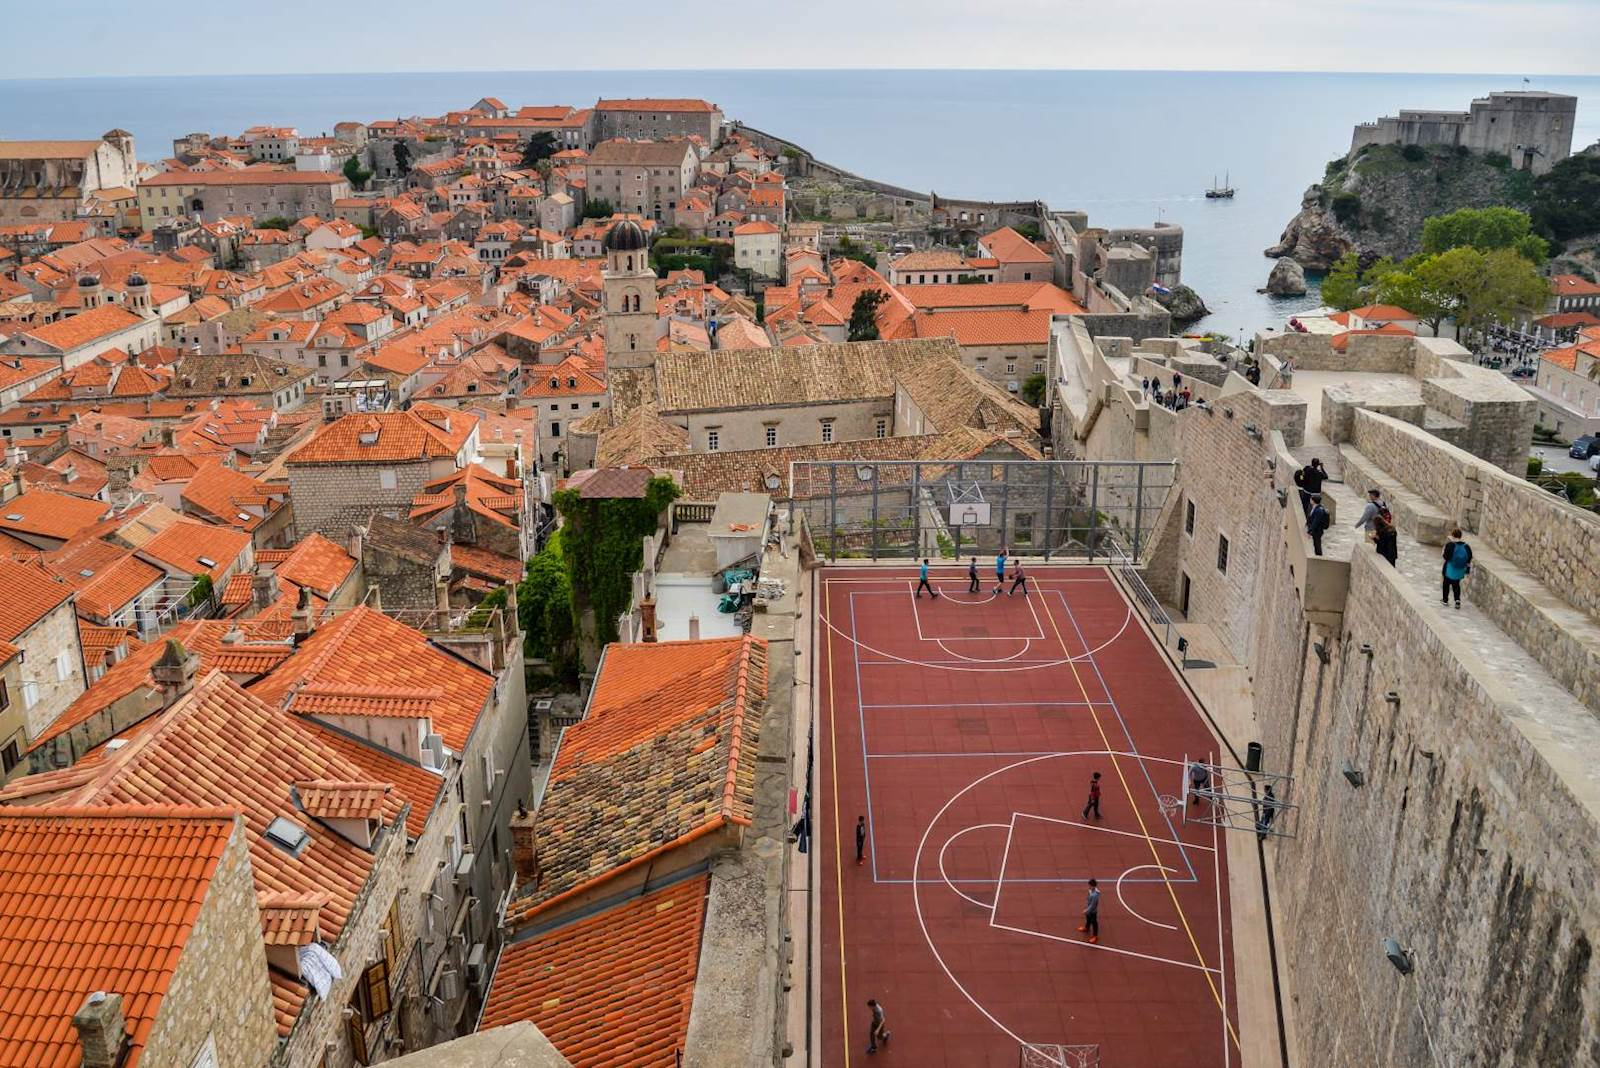 -images-excursions-discover-dubrovnik--12-dubrovnik-walking-tour-old-town-view-from-north.jpg